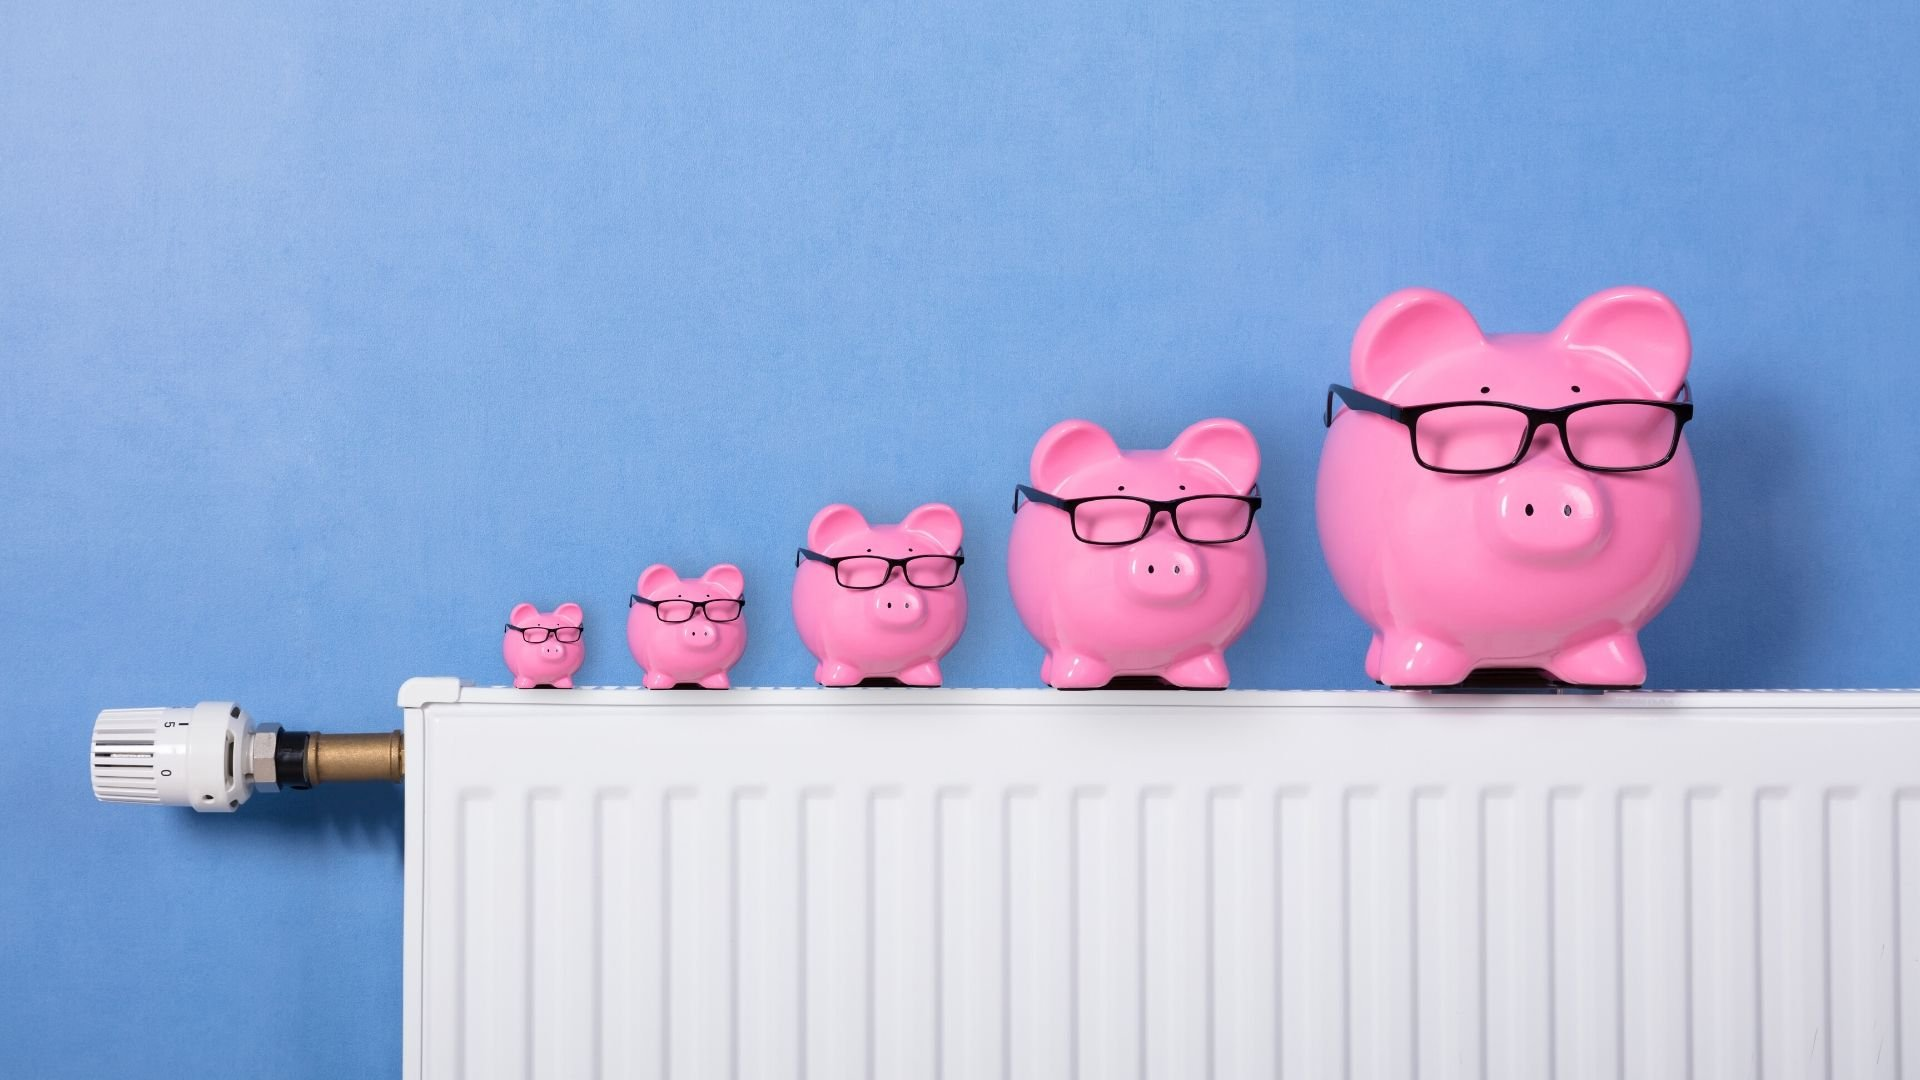 5 piggy banks on top of a radiator